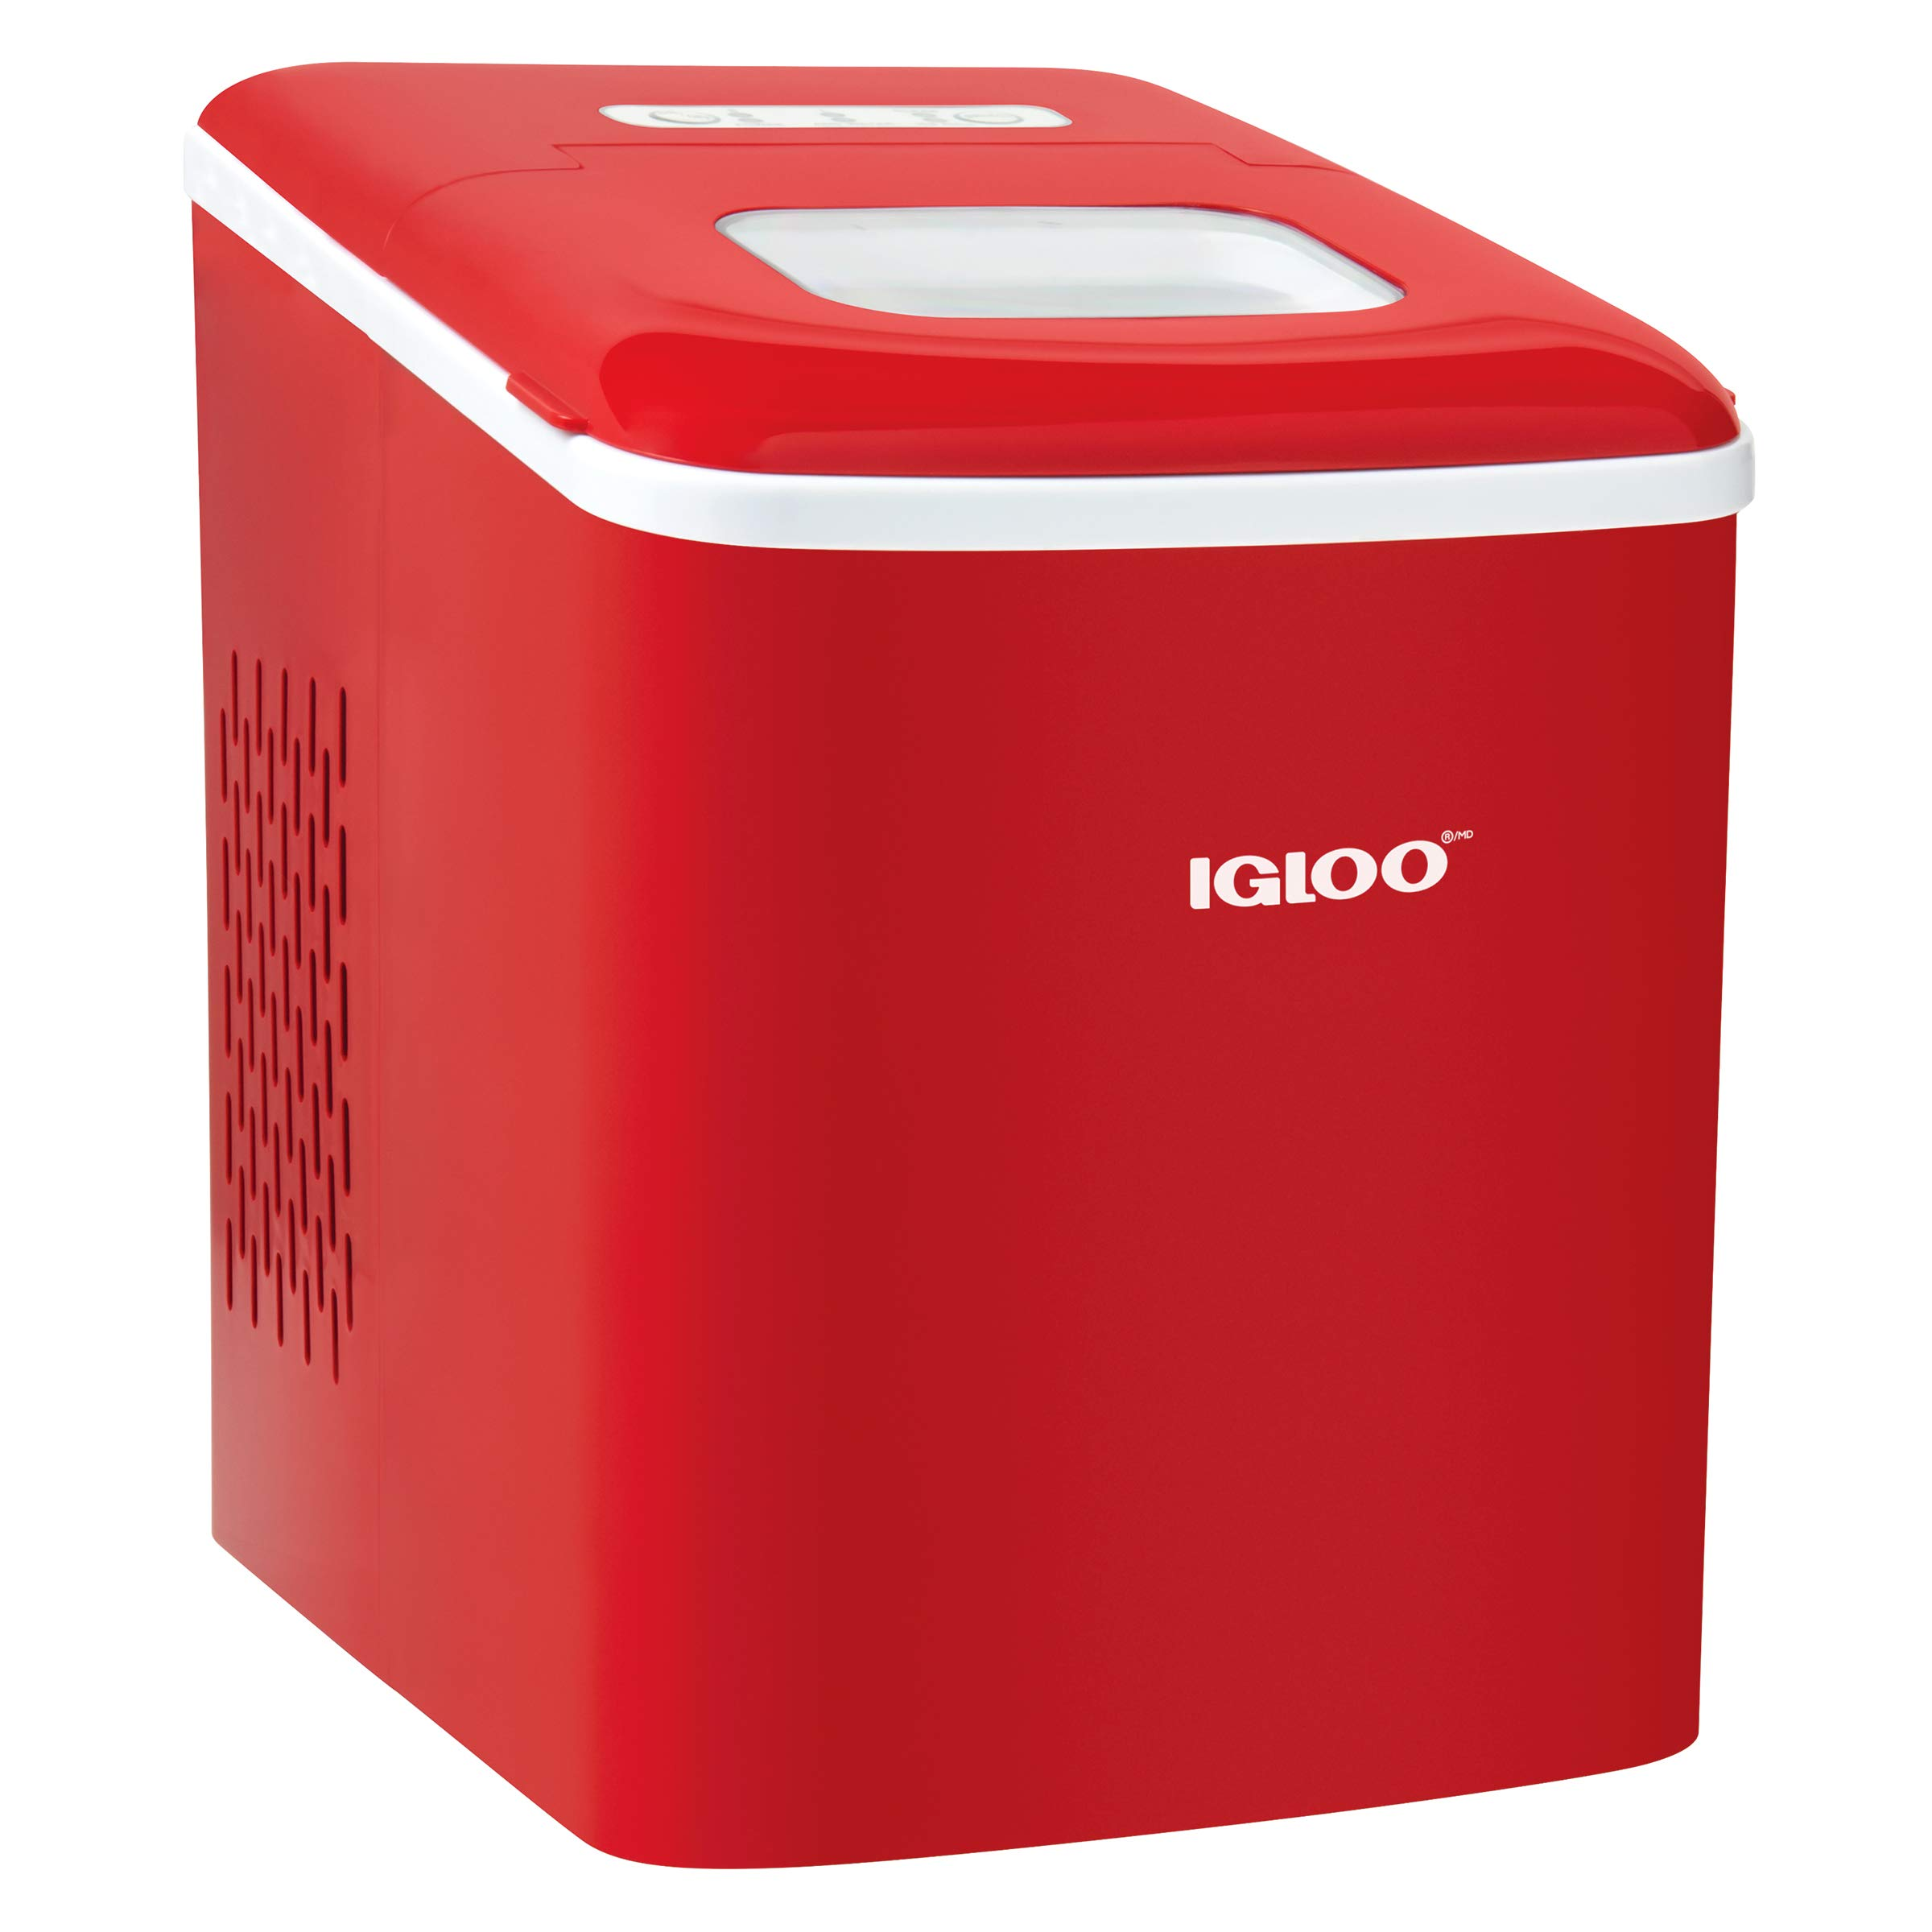 Igloo Icebnh26rd Automatic Self Cleaning Portable Electric Countertop Ice Maker Machine 26 Pounds In 24 Hours 9 Cubes Ready In 7 Minutes With Scoop And Basket